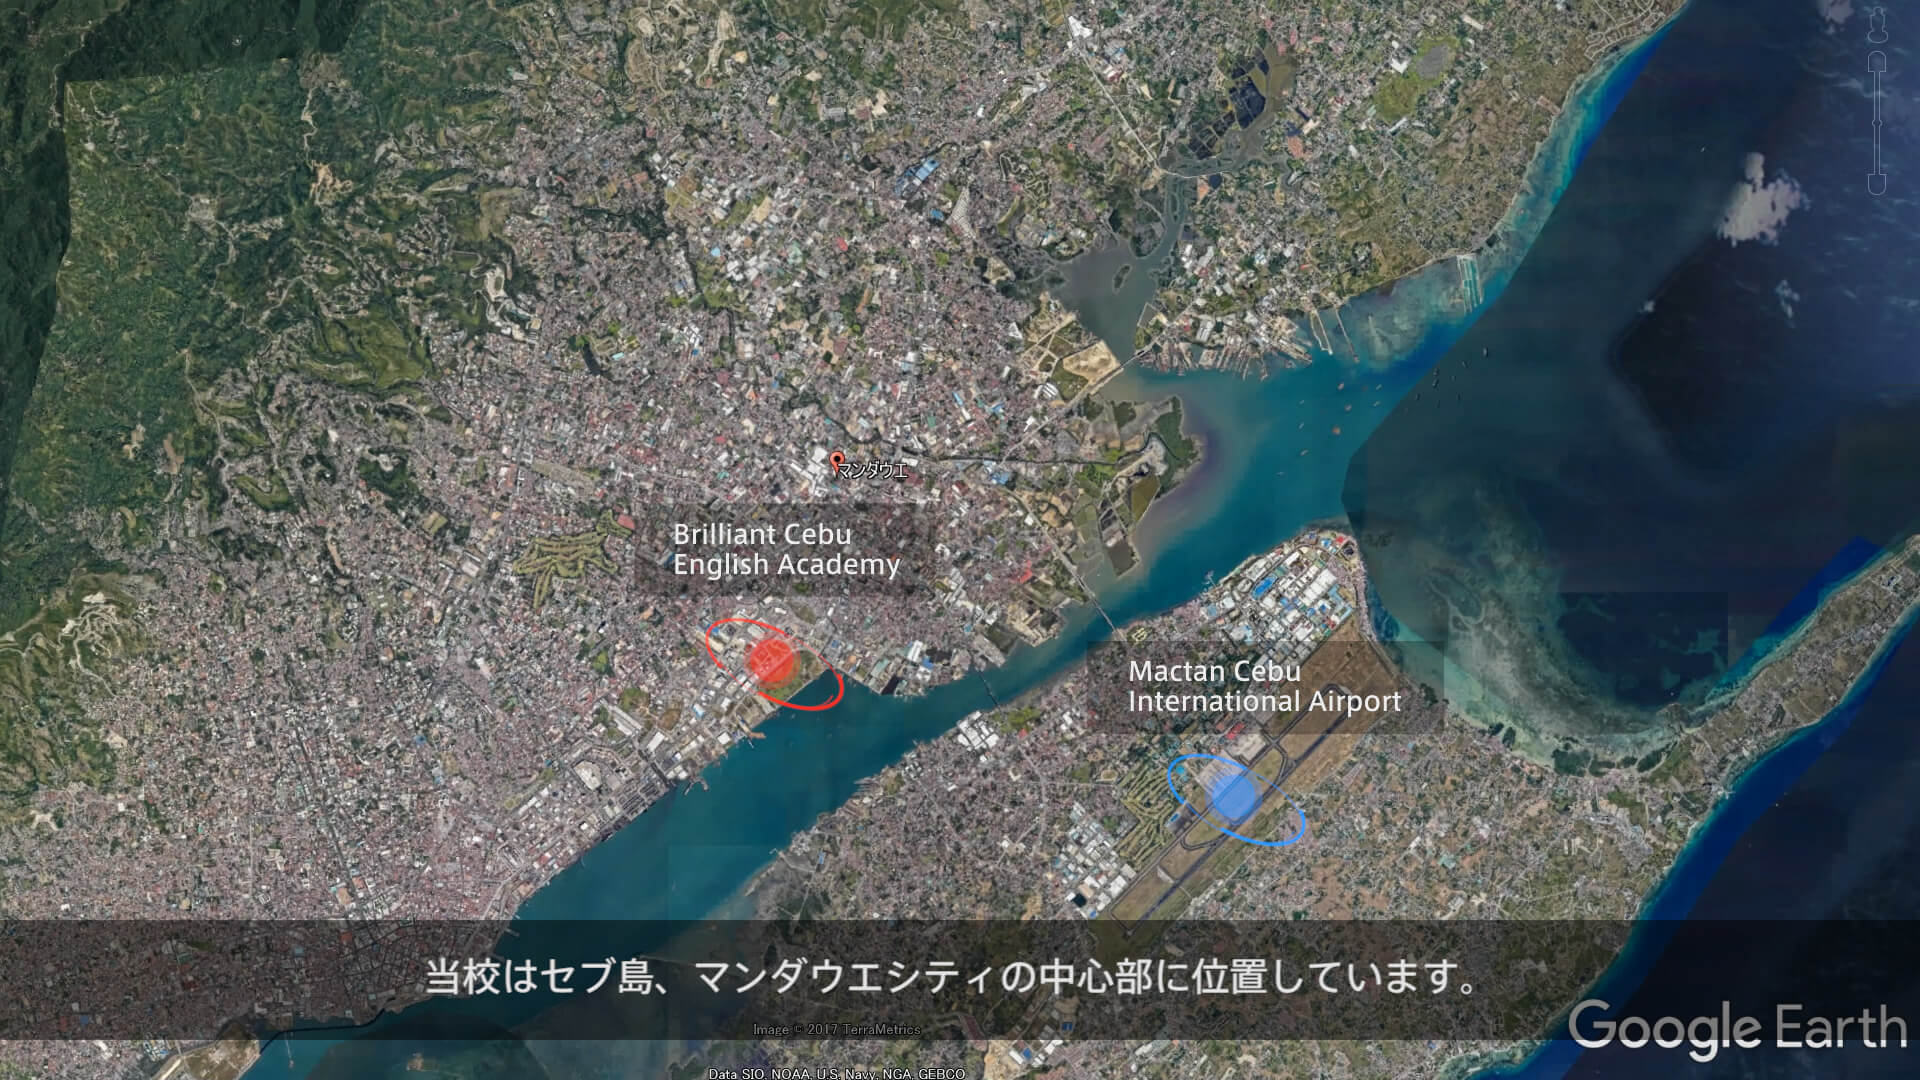 Google EarthとAfter Effectsで空港から学校までのアクセスの良さを表現